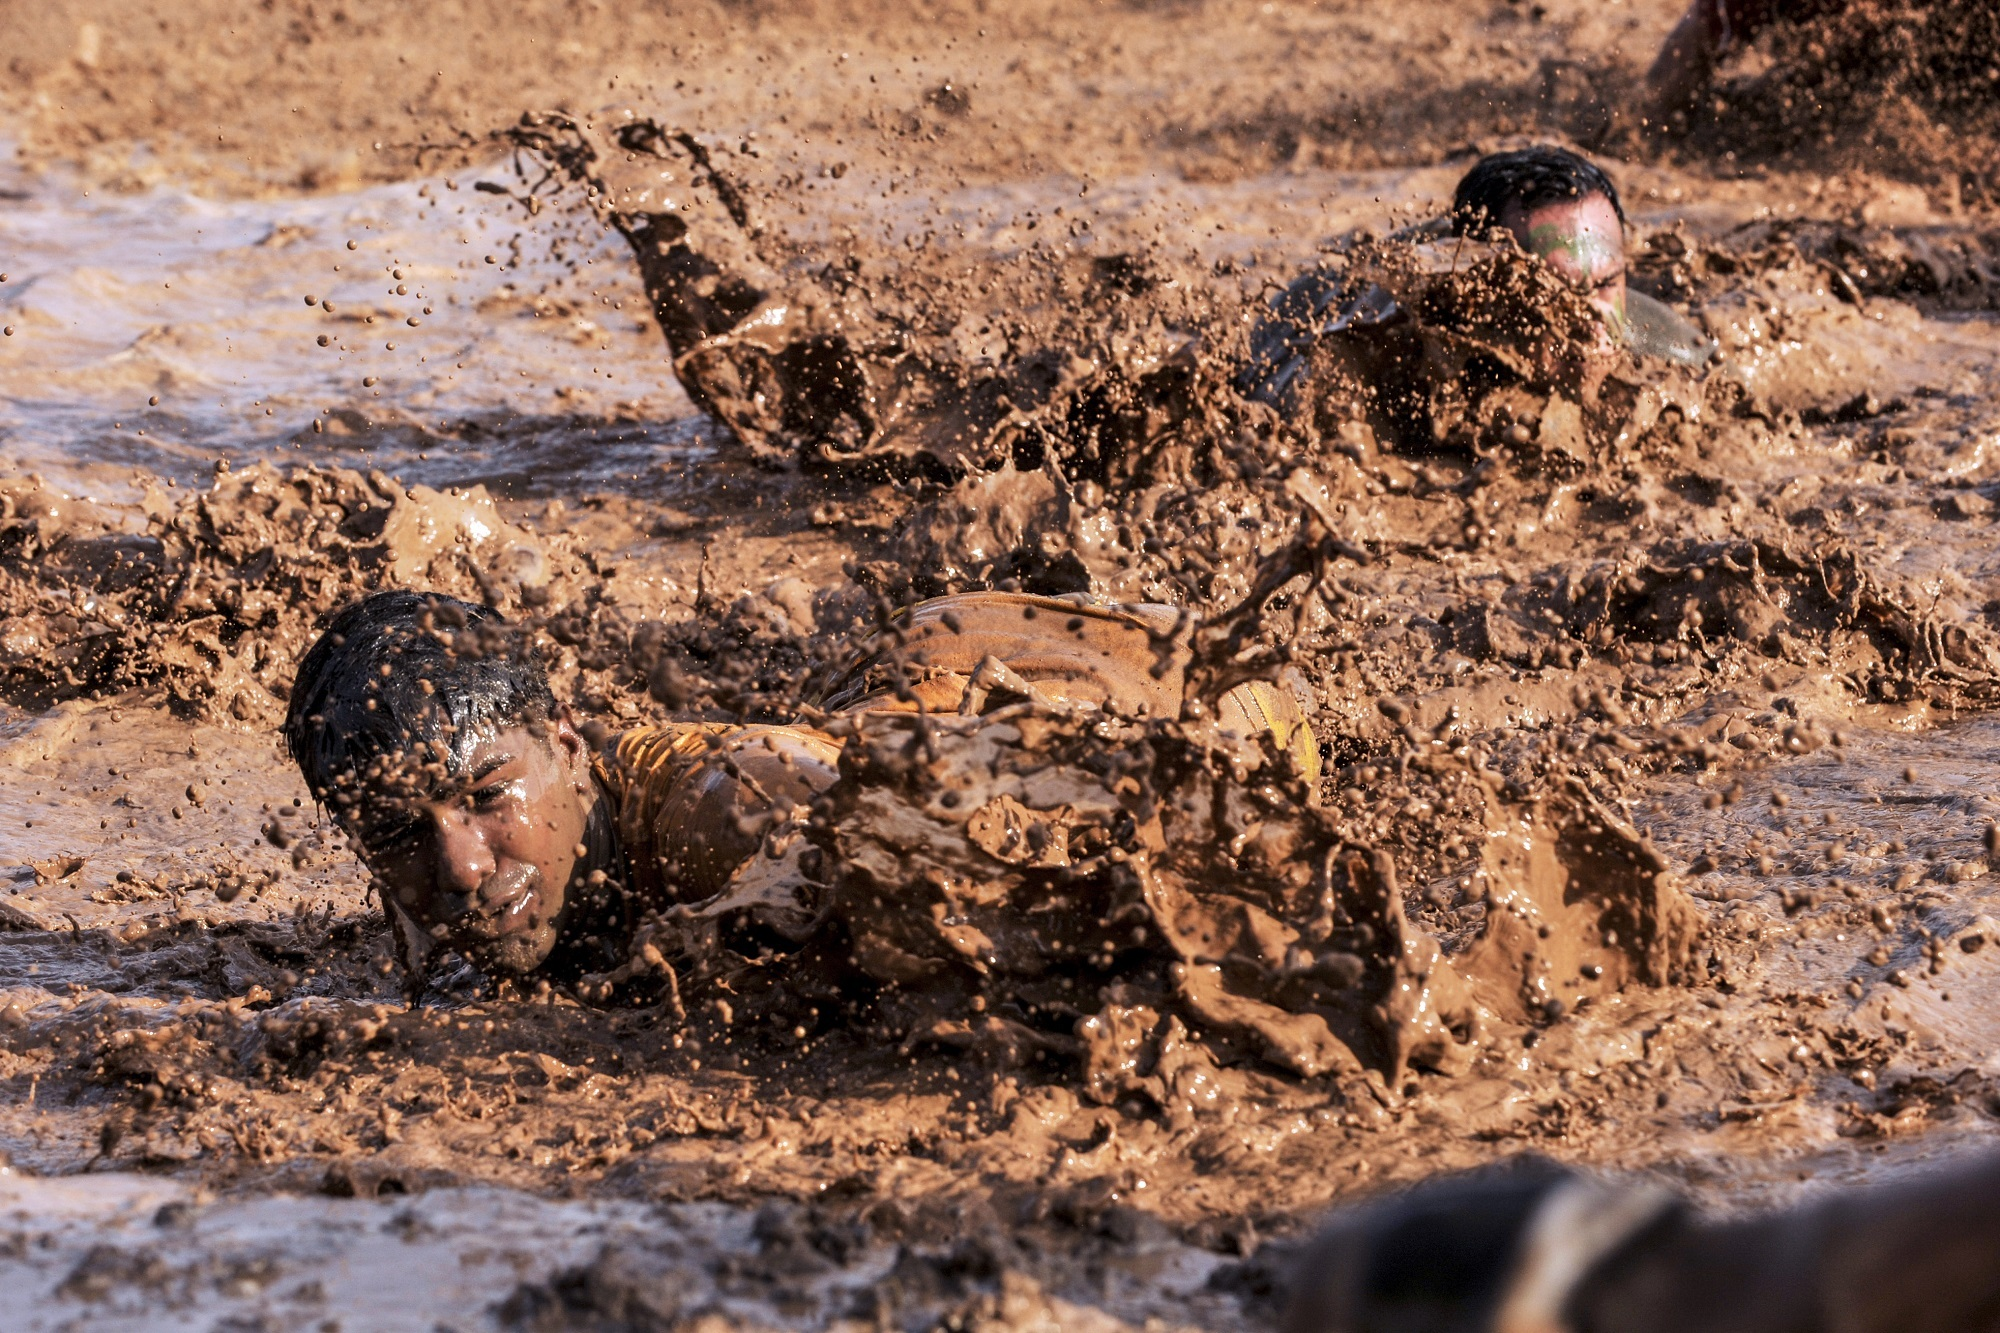 Get down and get dirty - It's one way to raise funds!